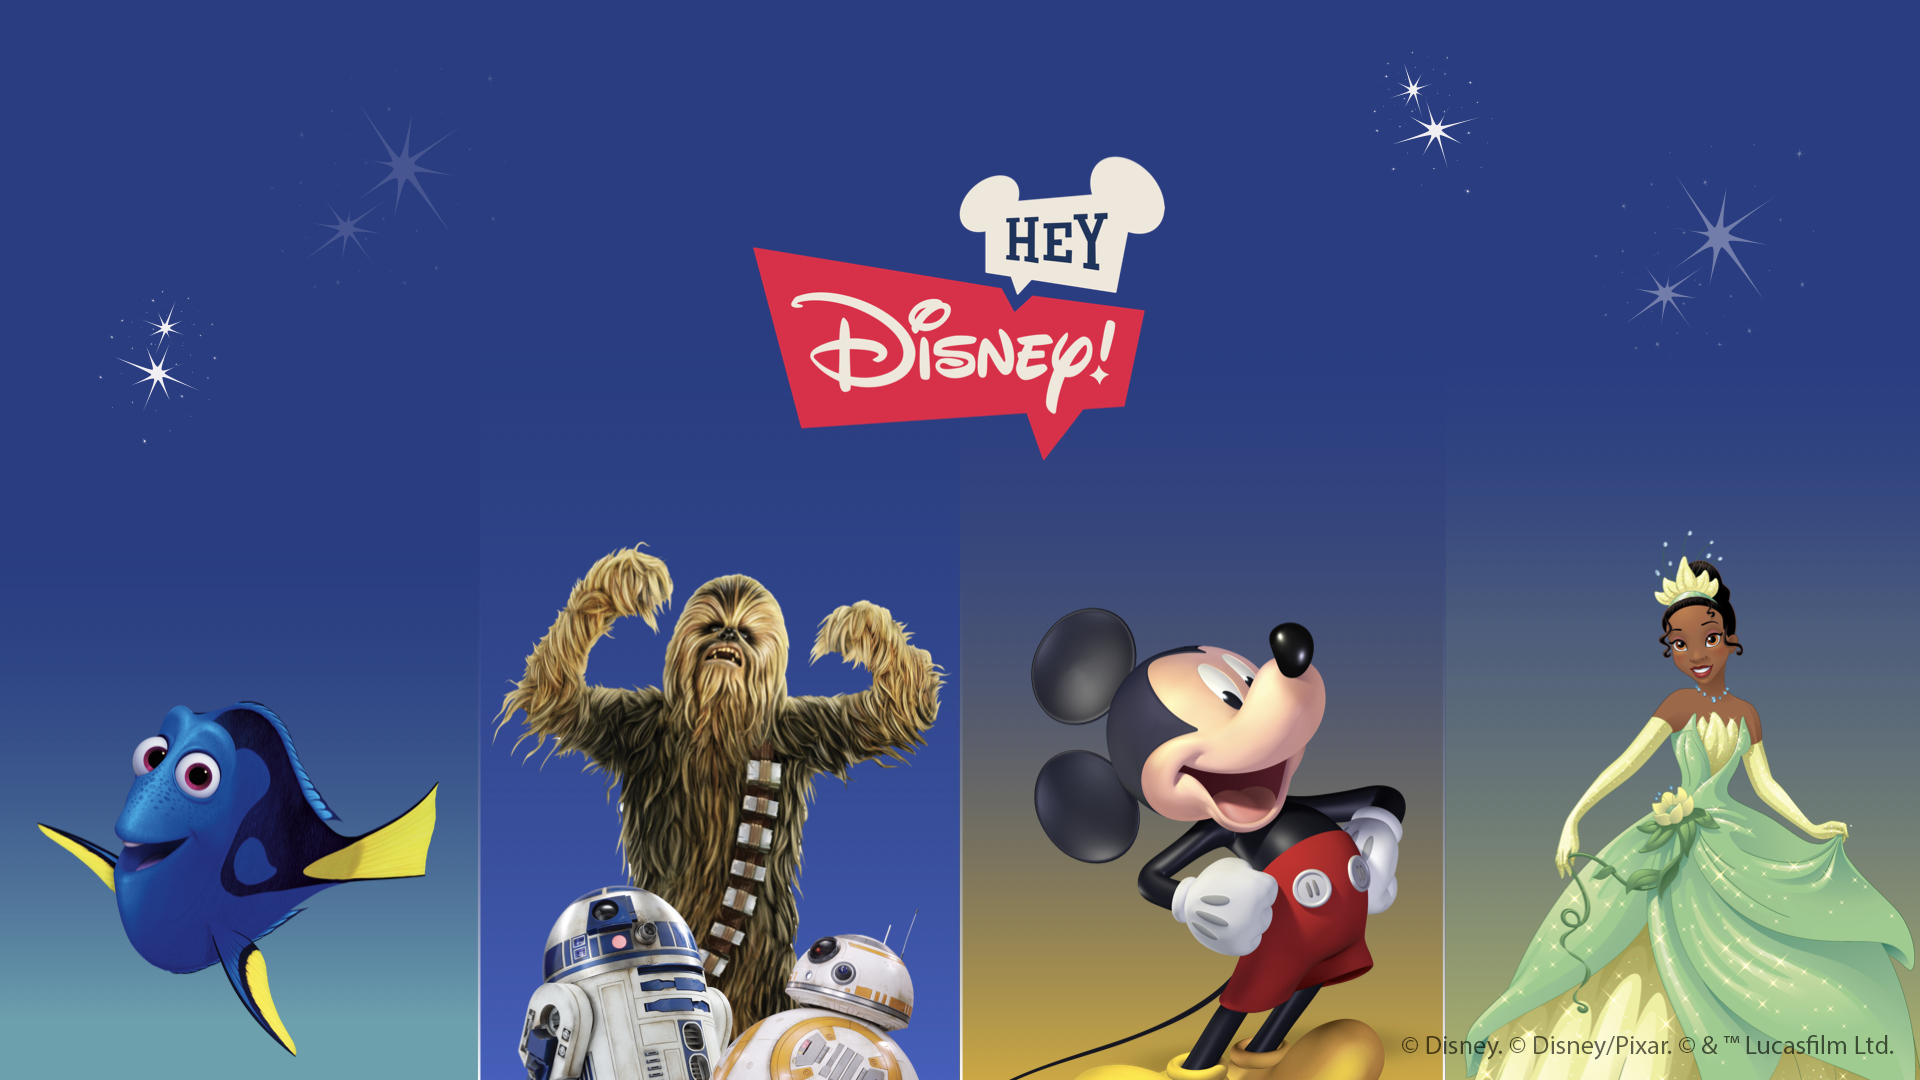 hey-disney-with-character2.png